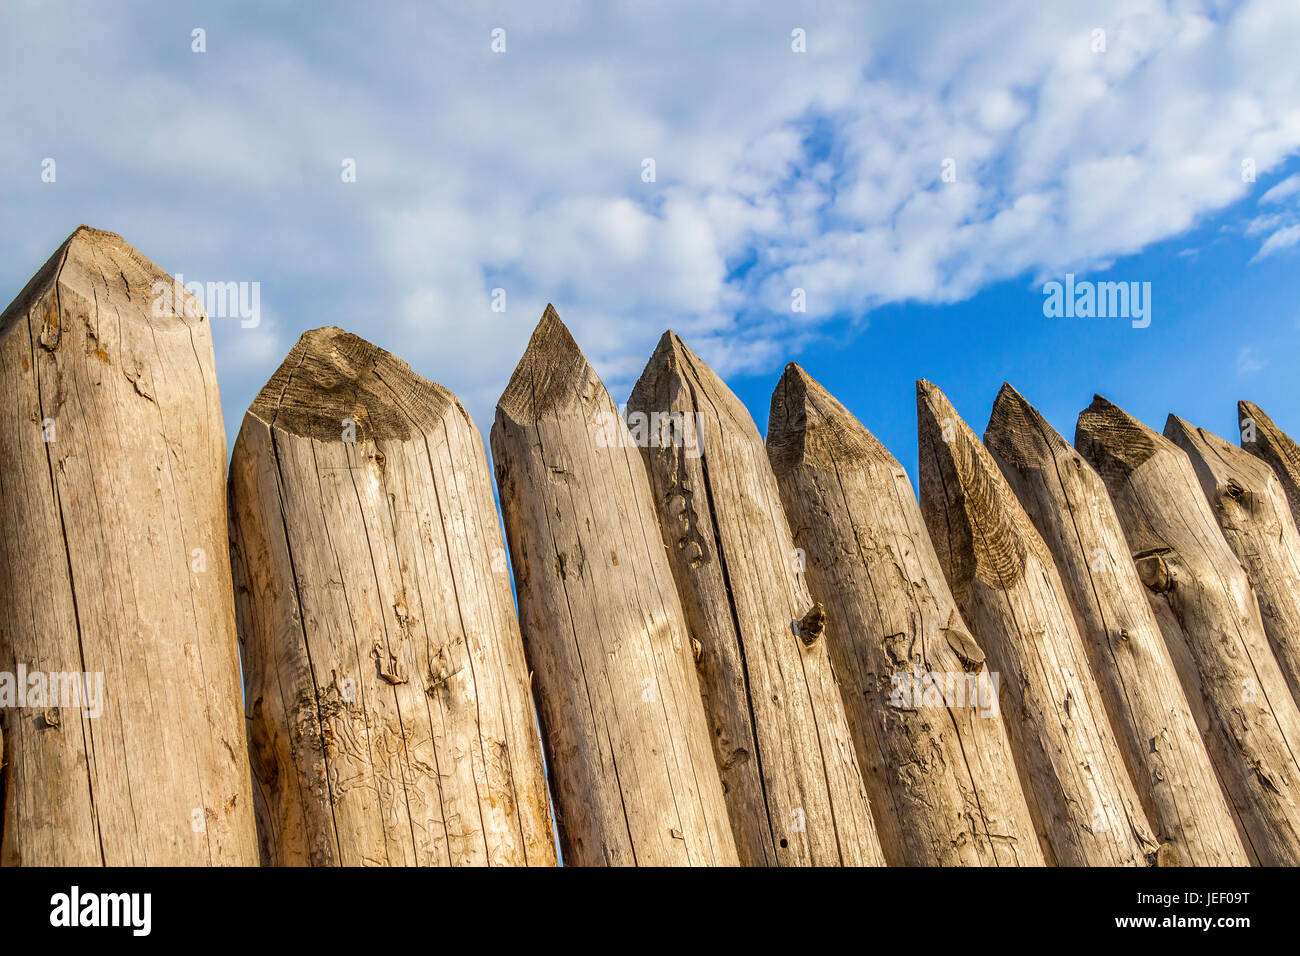 Weathered Picket Fence Stock Photos & Weathered Picket